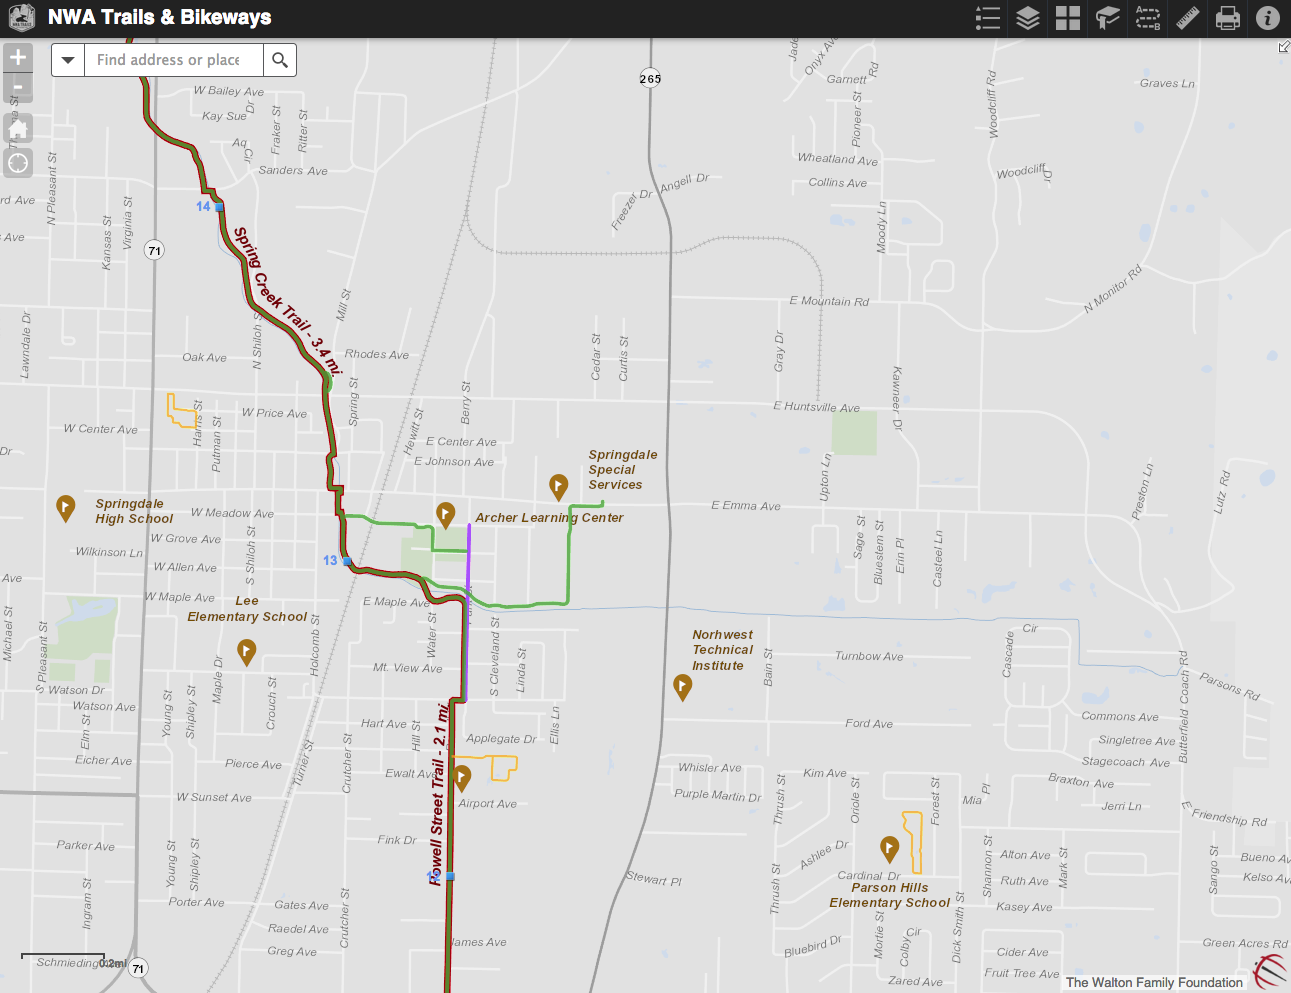 Click to view an updated map of the entire Razorback Greenway.